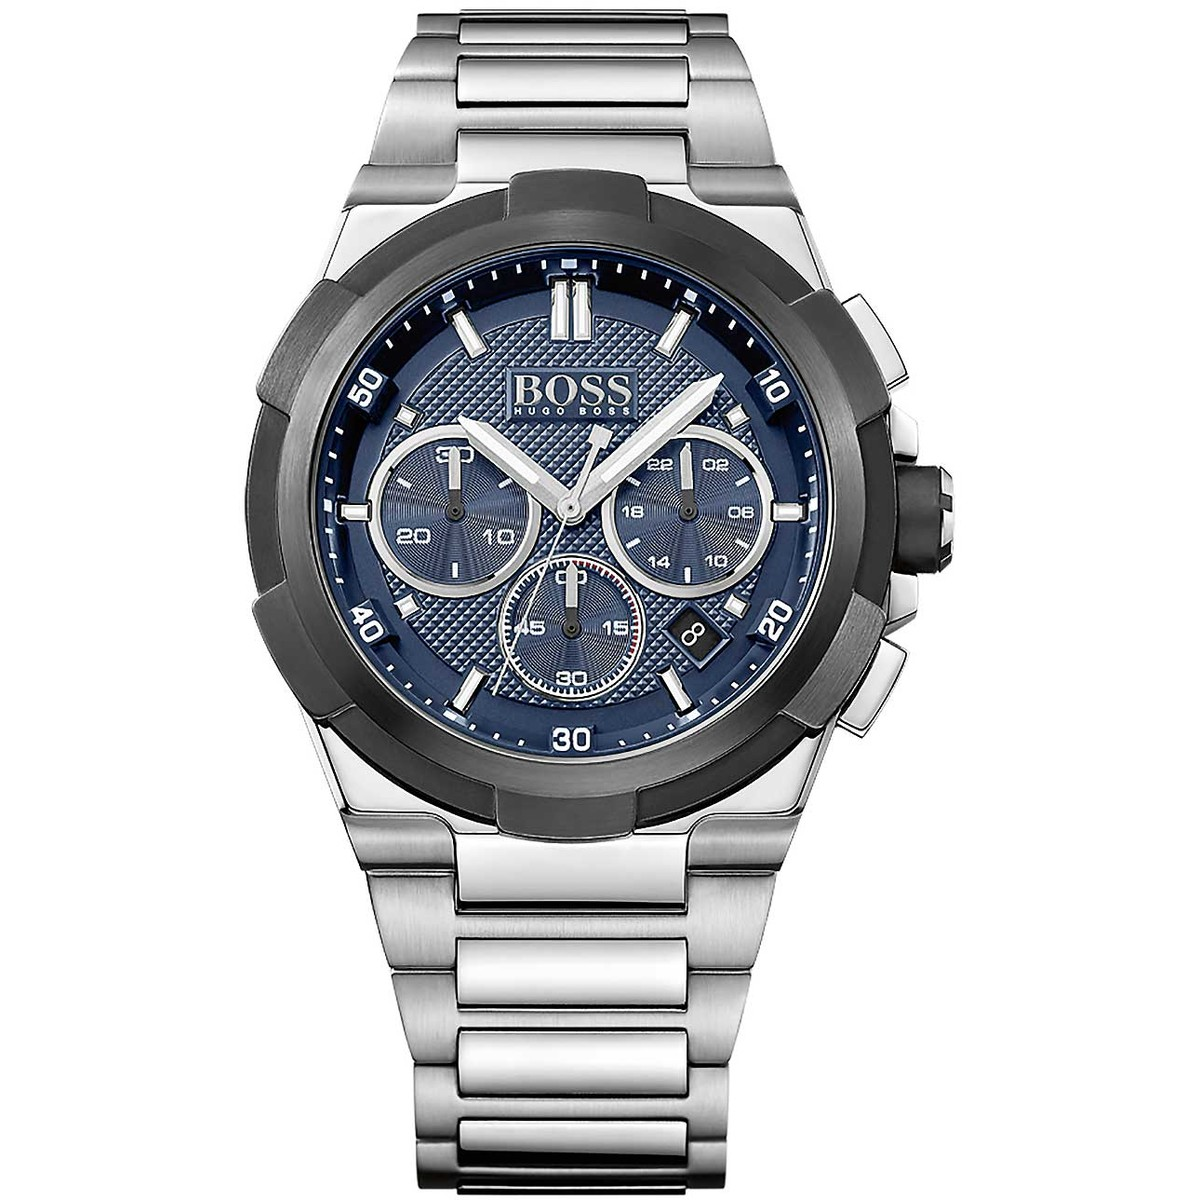 Ceas barbatesc Hugo Boss Supernova 1513360 original de mana